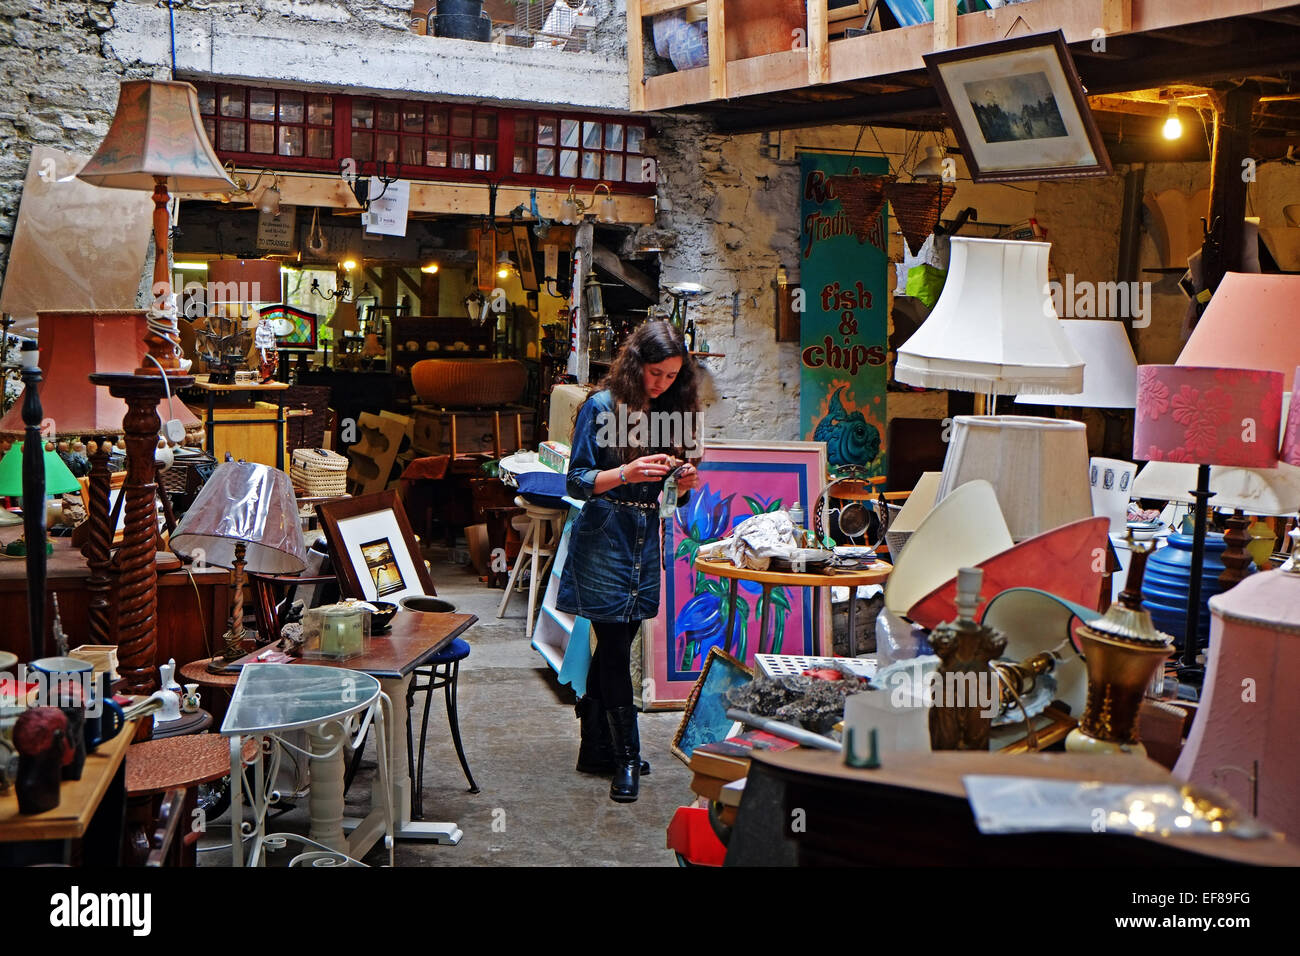 Girl in old curiosity shop, antiques furniture collectables, Ireland - Stock Image